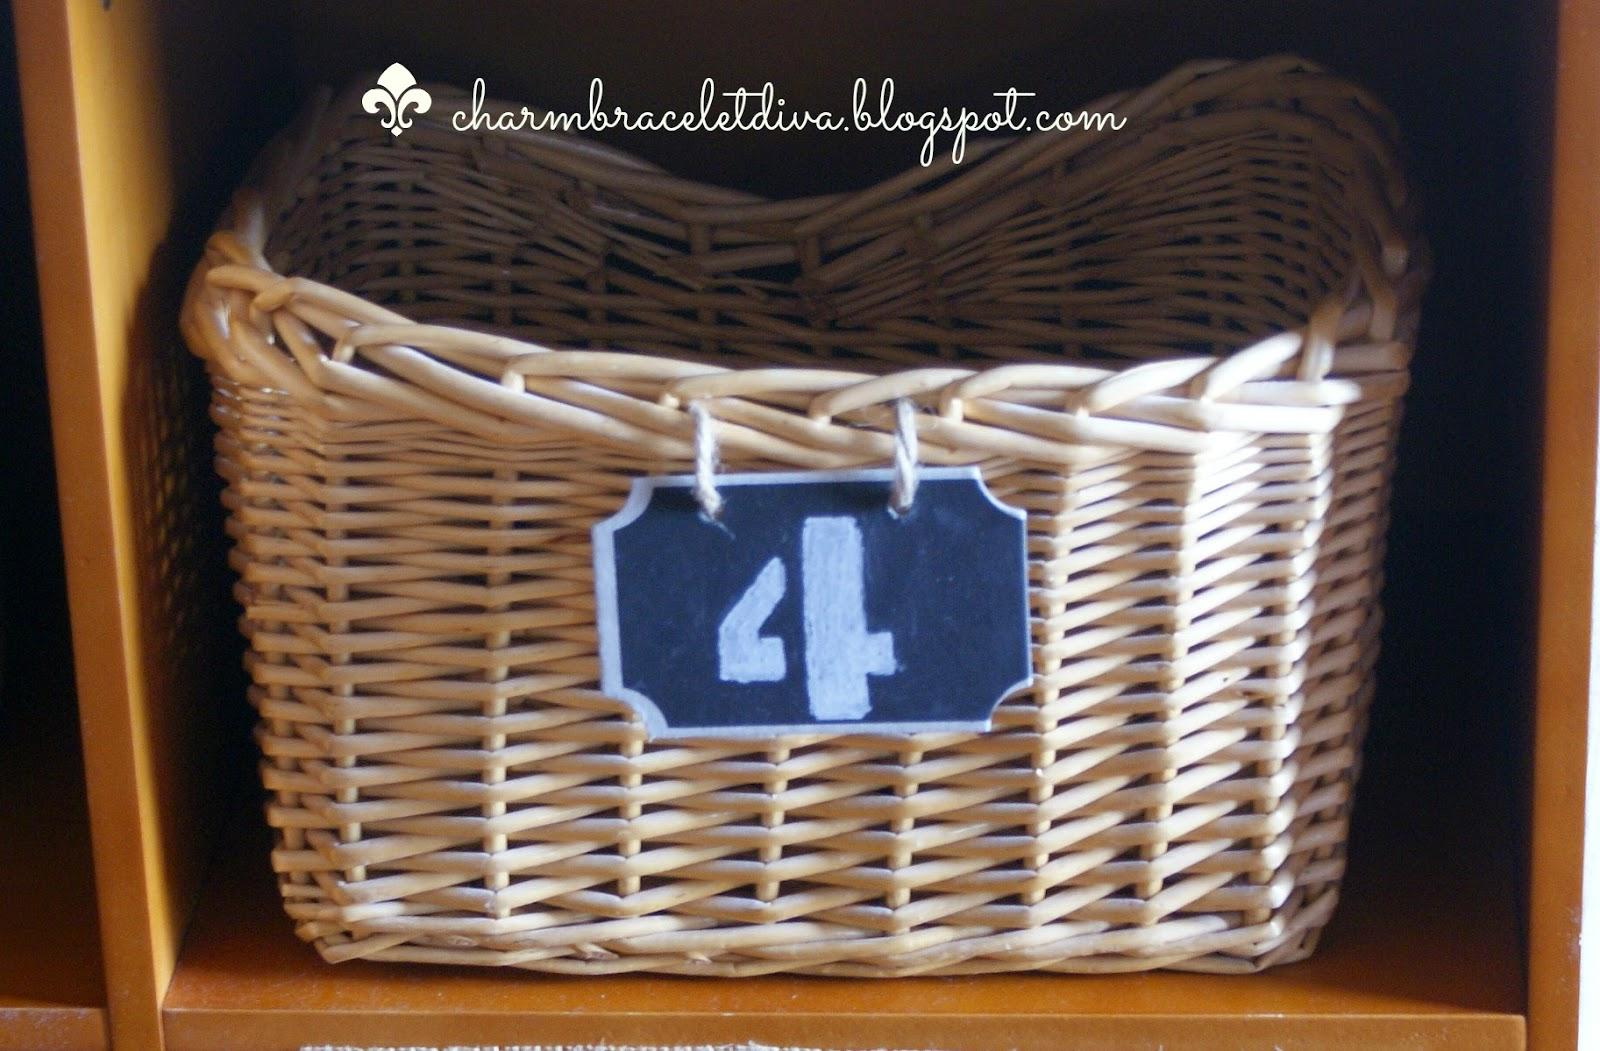 storage basket with number 4 chalkboard tag